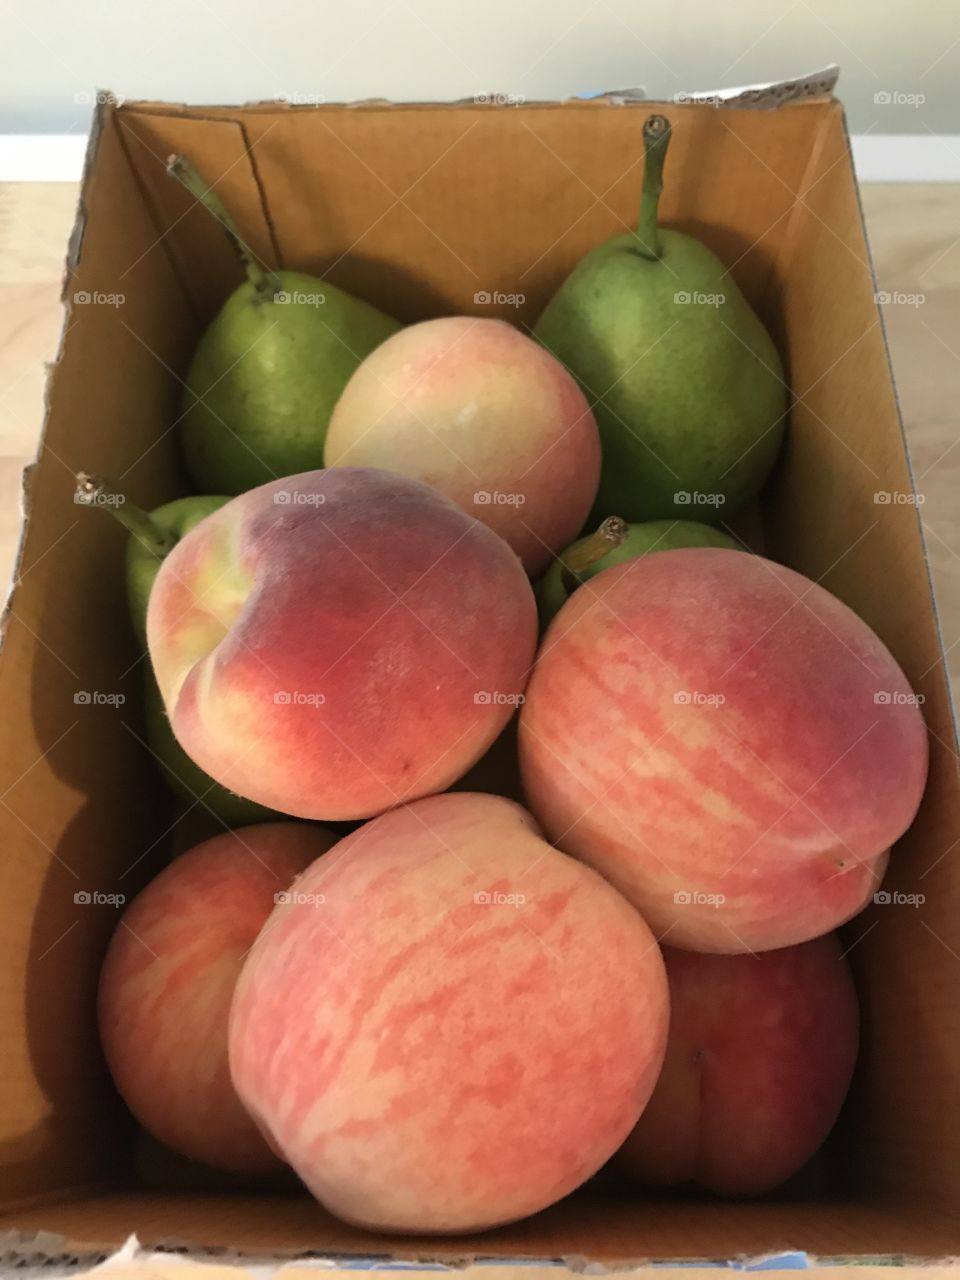 Box of orange peaches and green pears